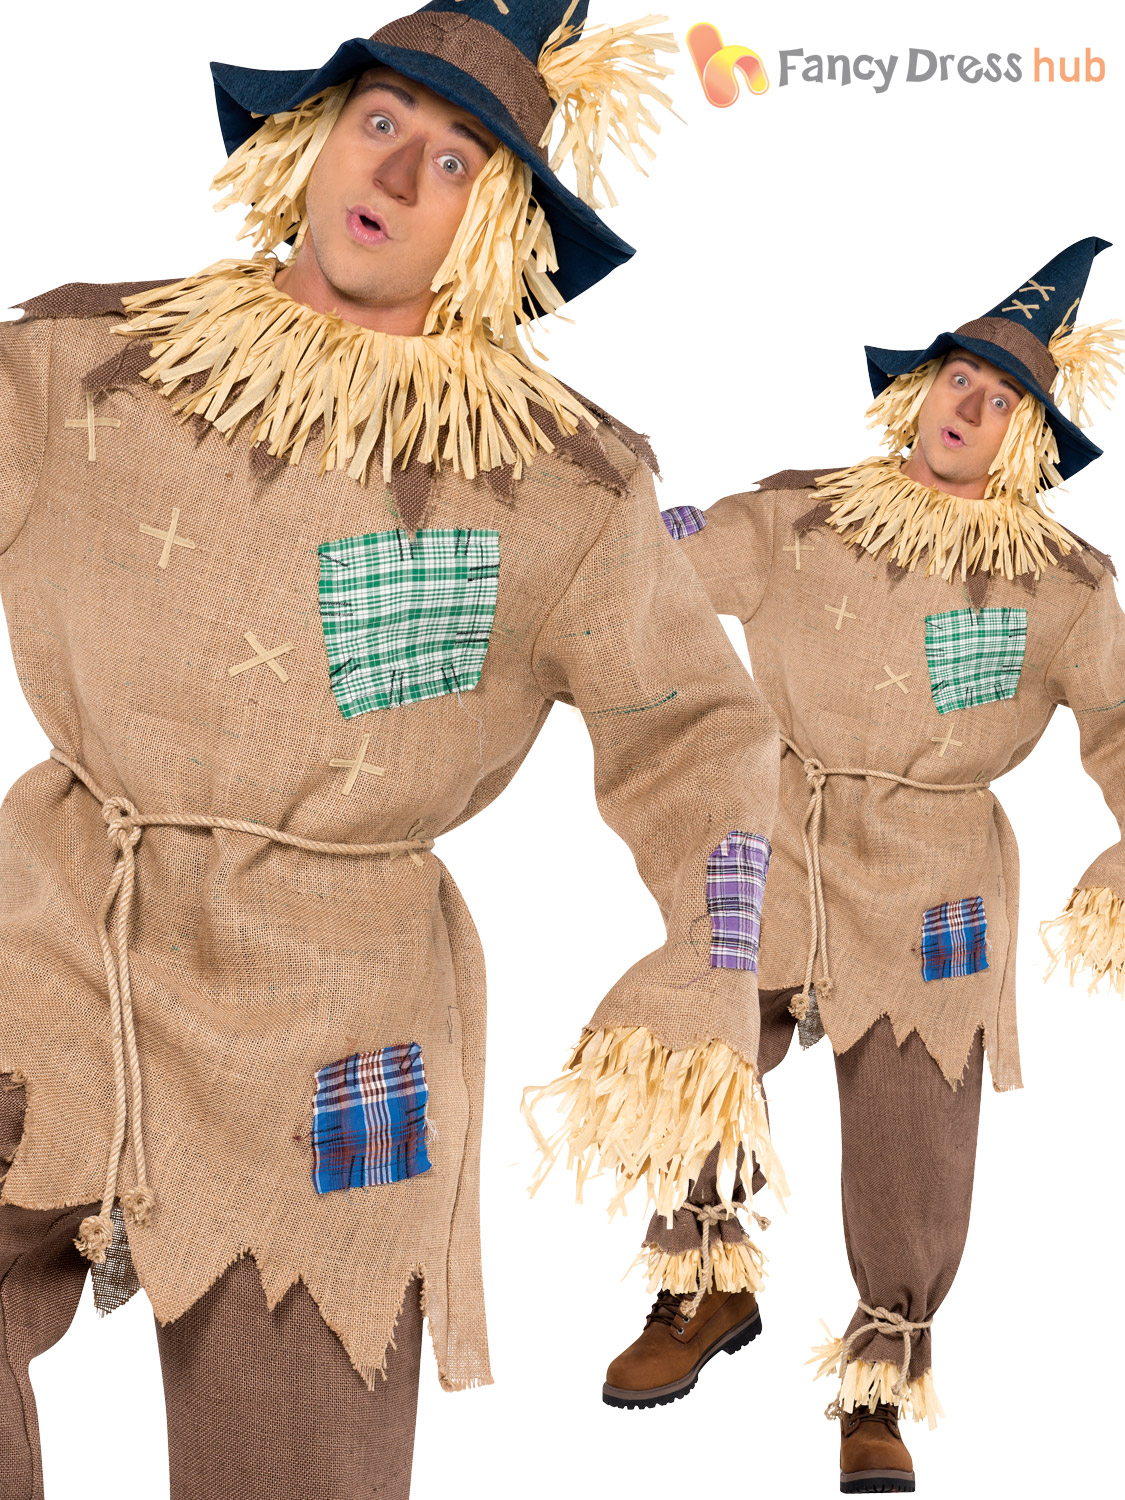 b781033ca40 Scarecrow Mens Fancy Dress Halloween Fairytale Book Week Adults Costume  Outfit